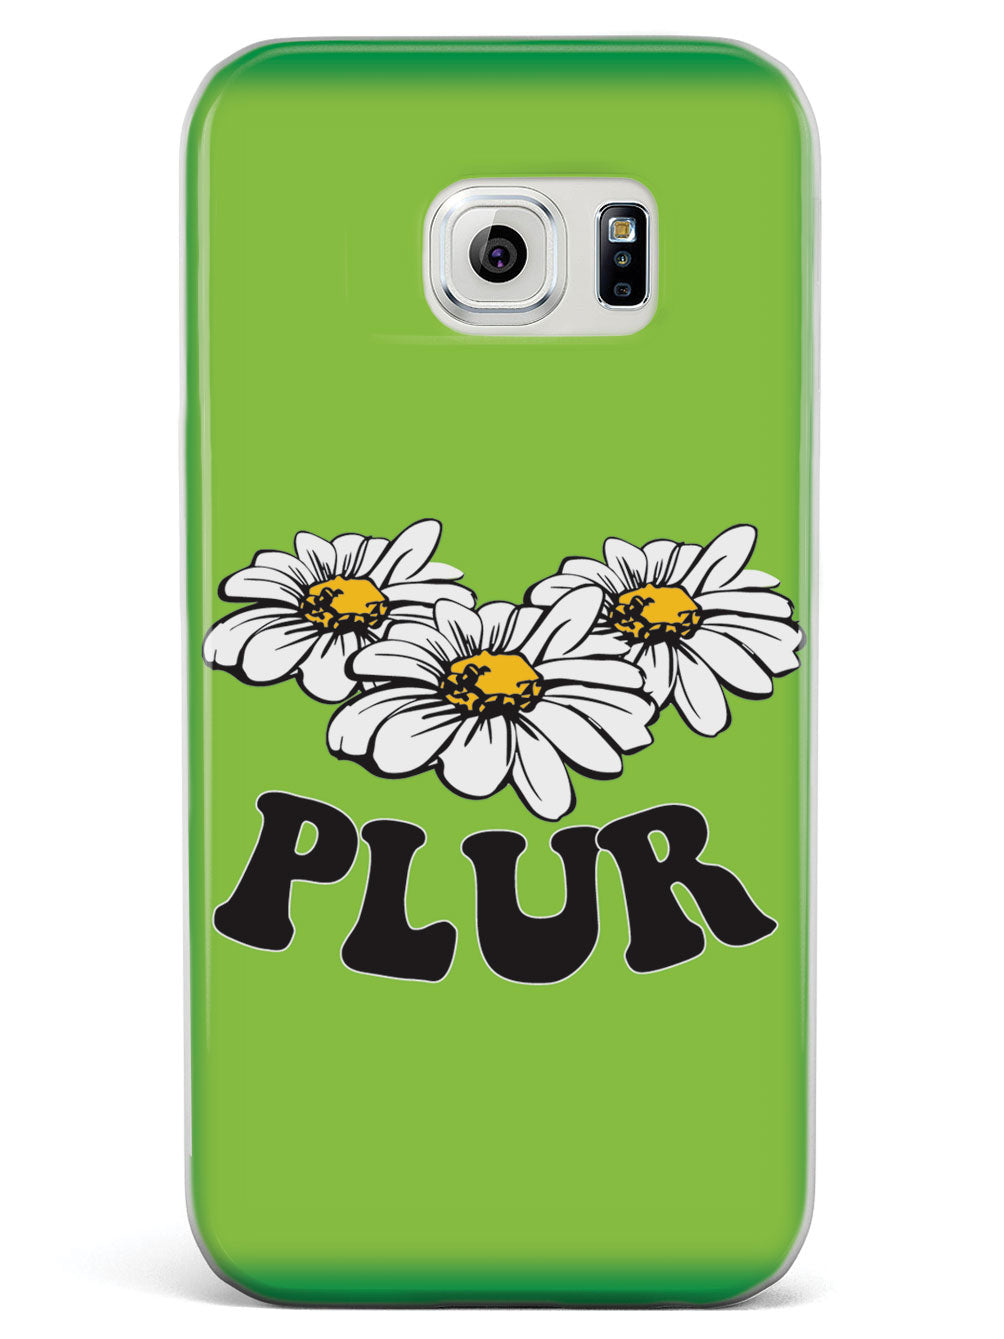 Green PLUR - White Case